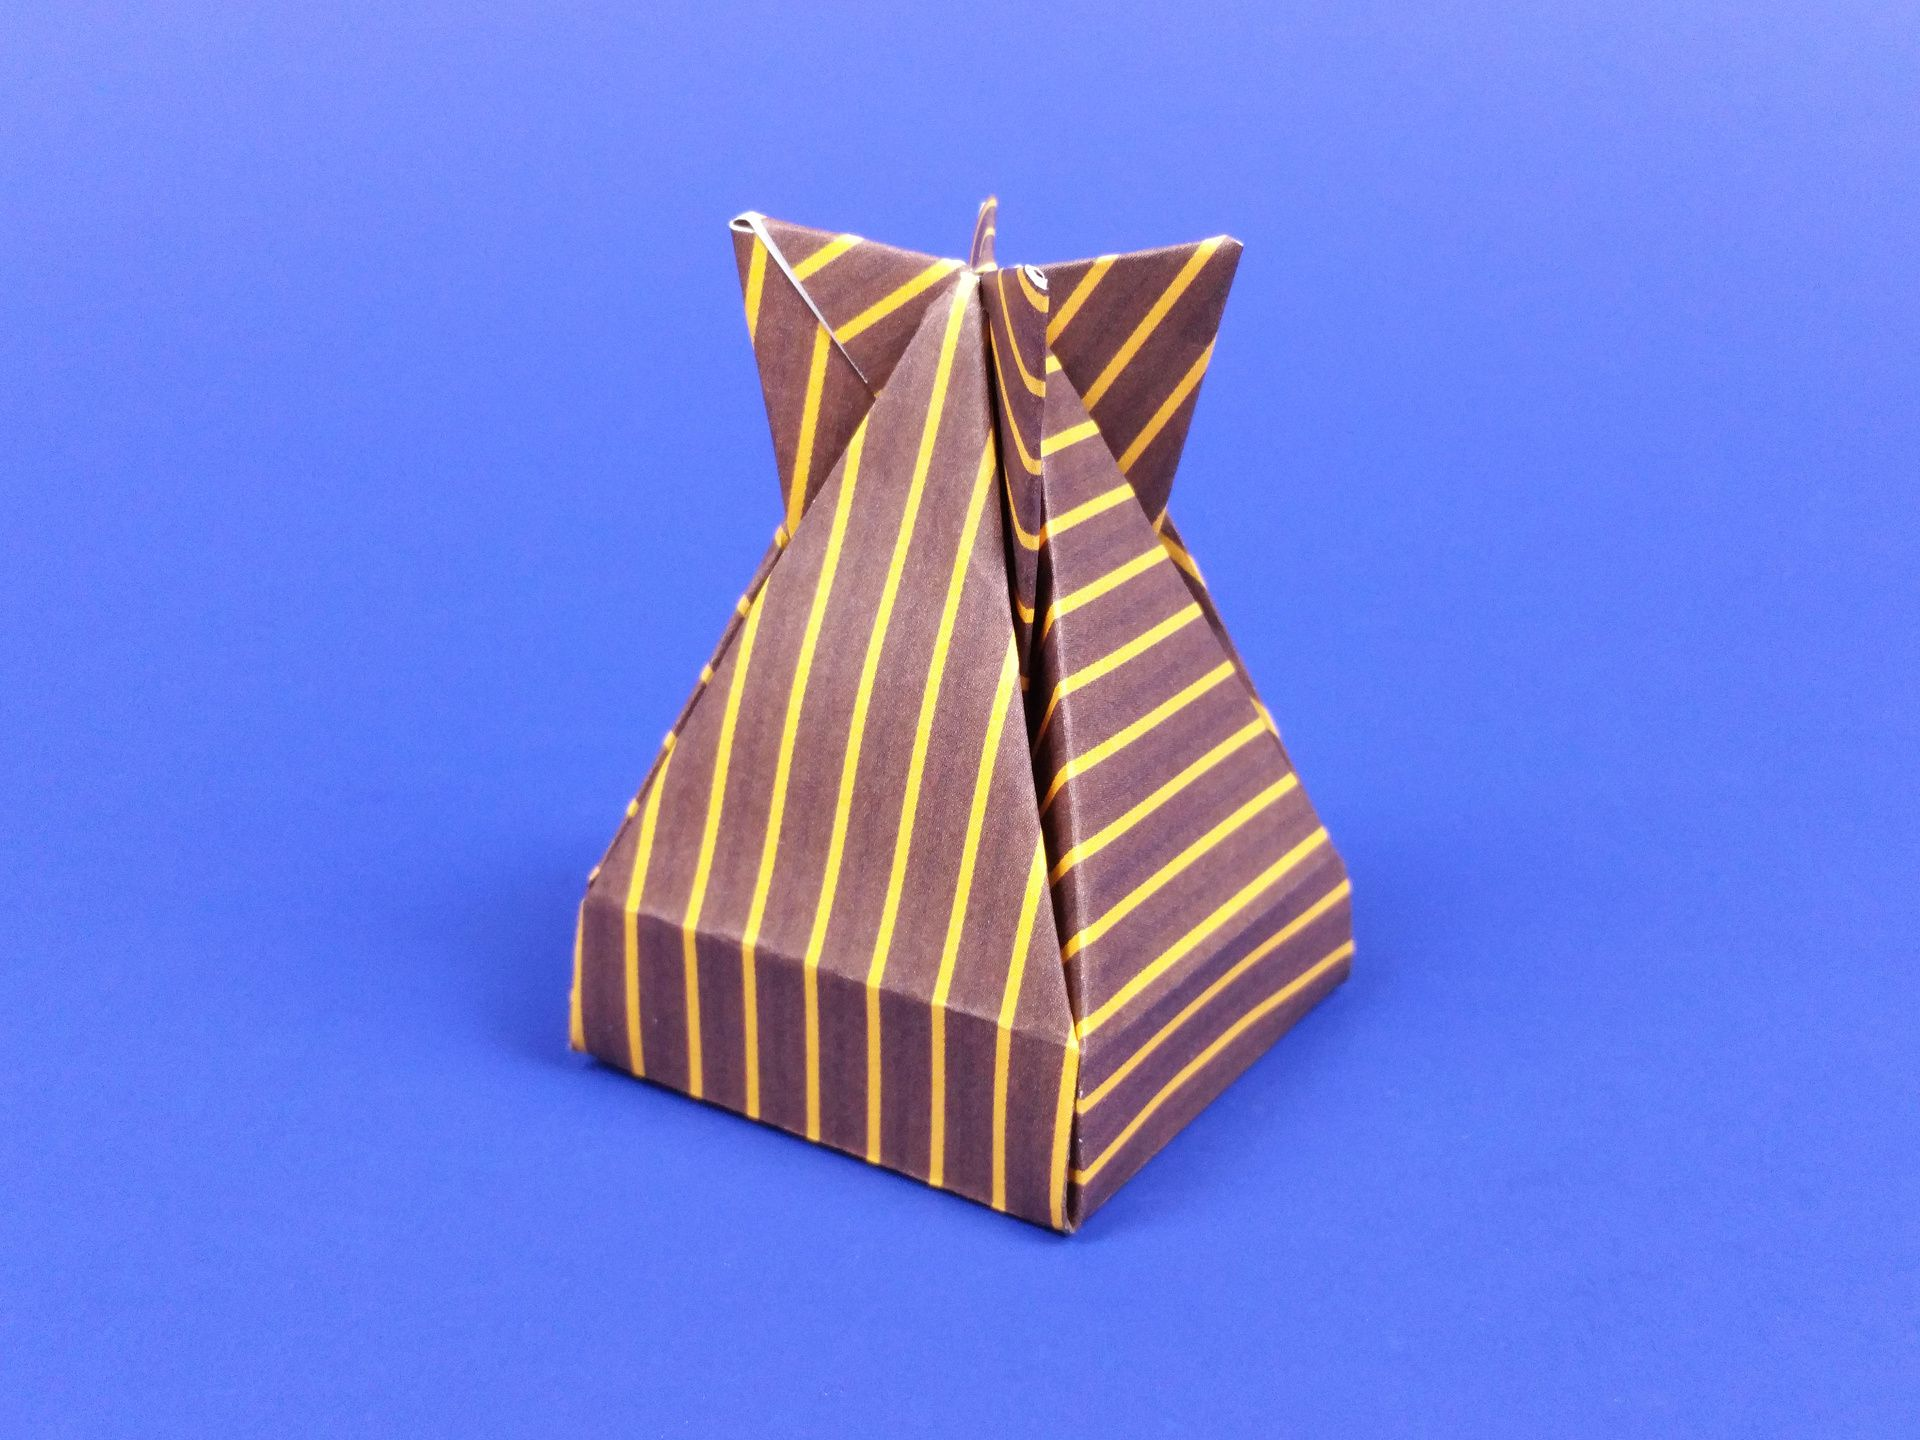 Origami models with photos and videos - photo#7